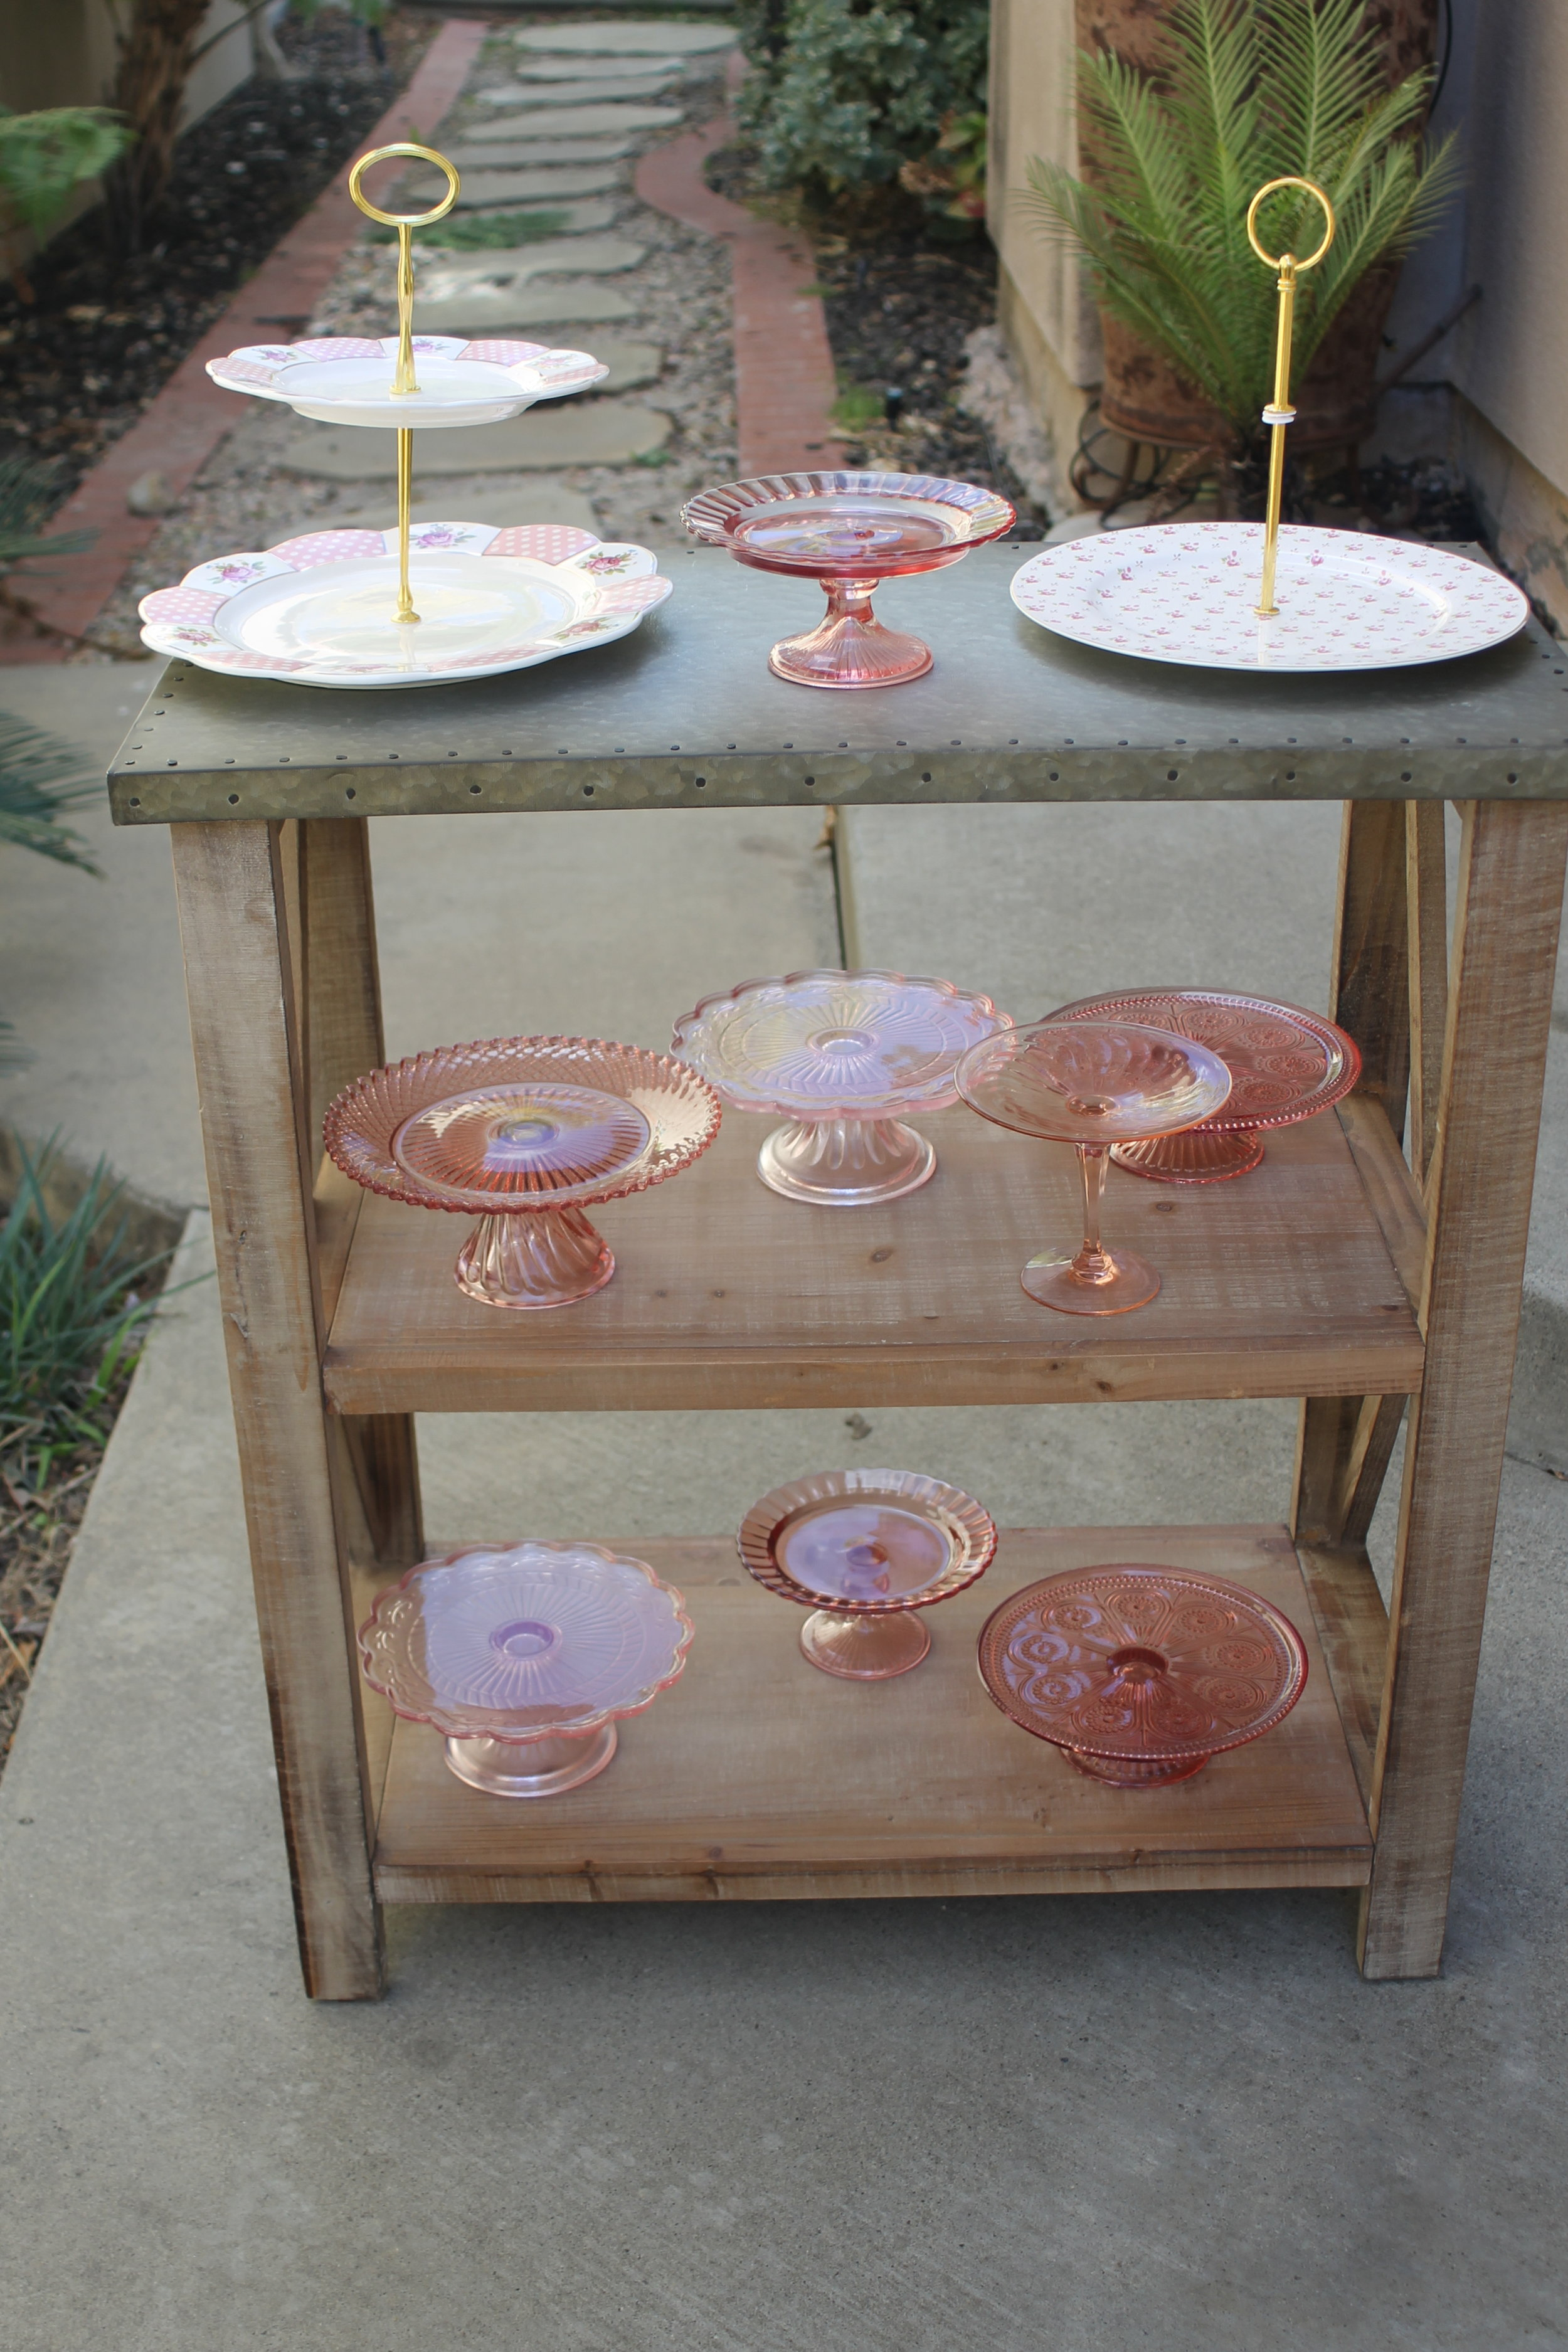 Various Pink Stands - $5.00